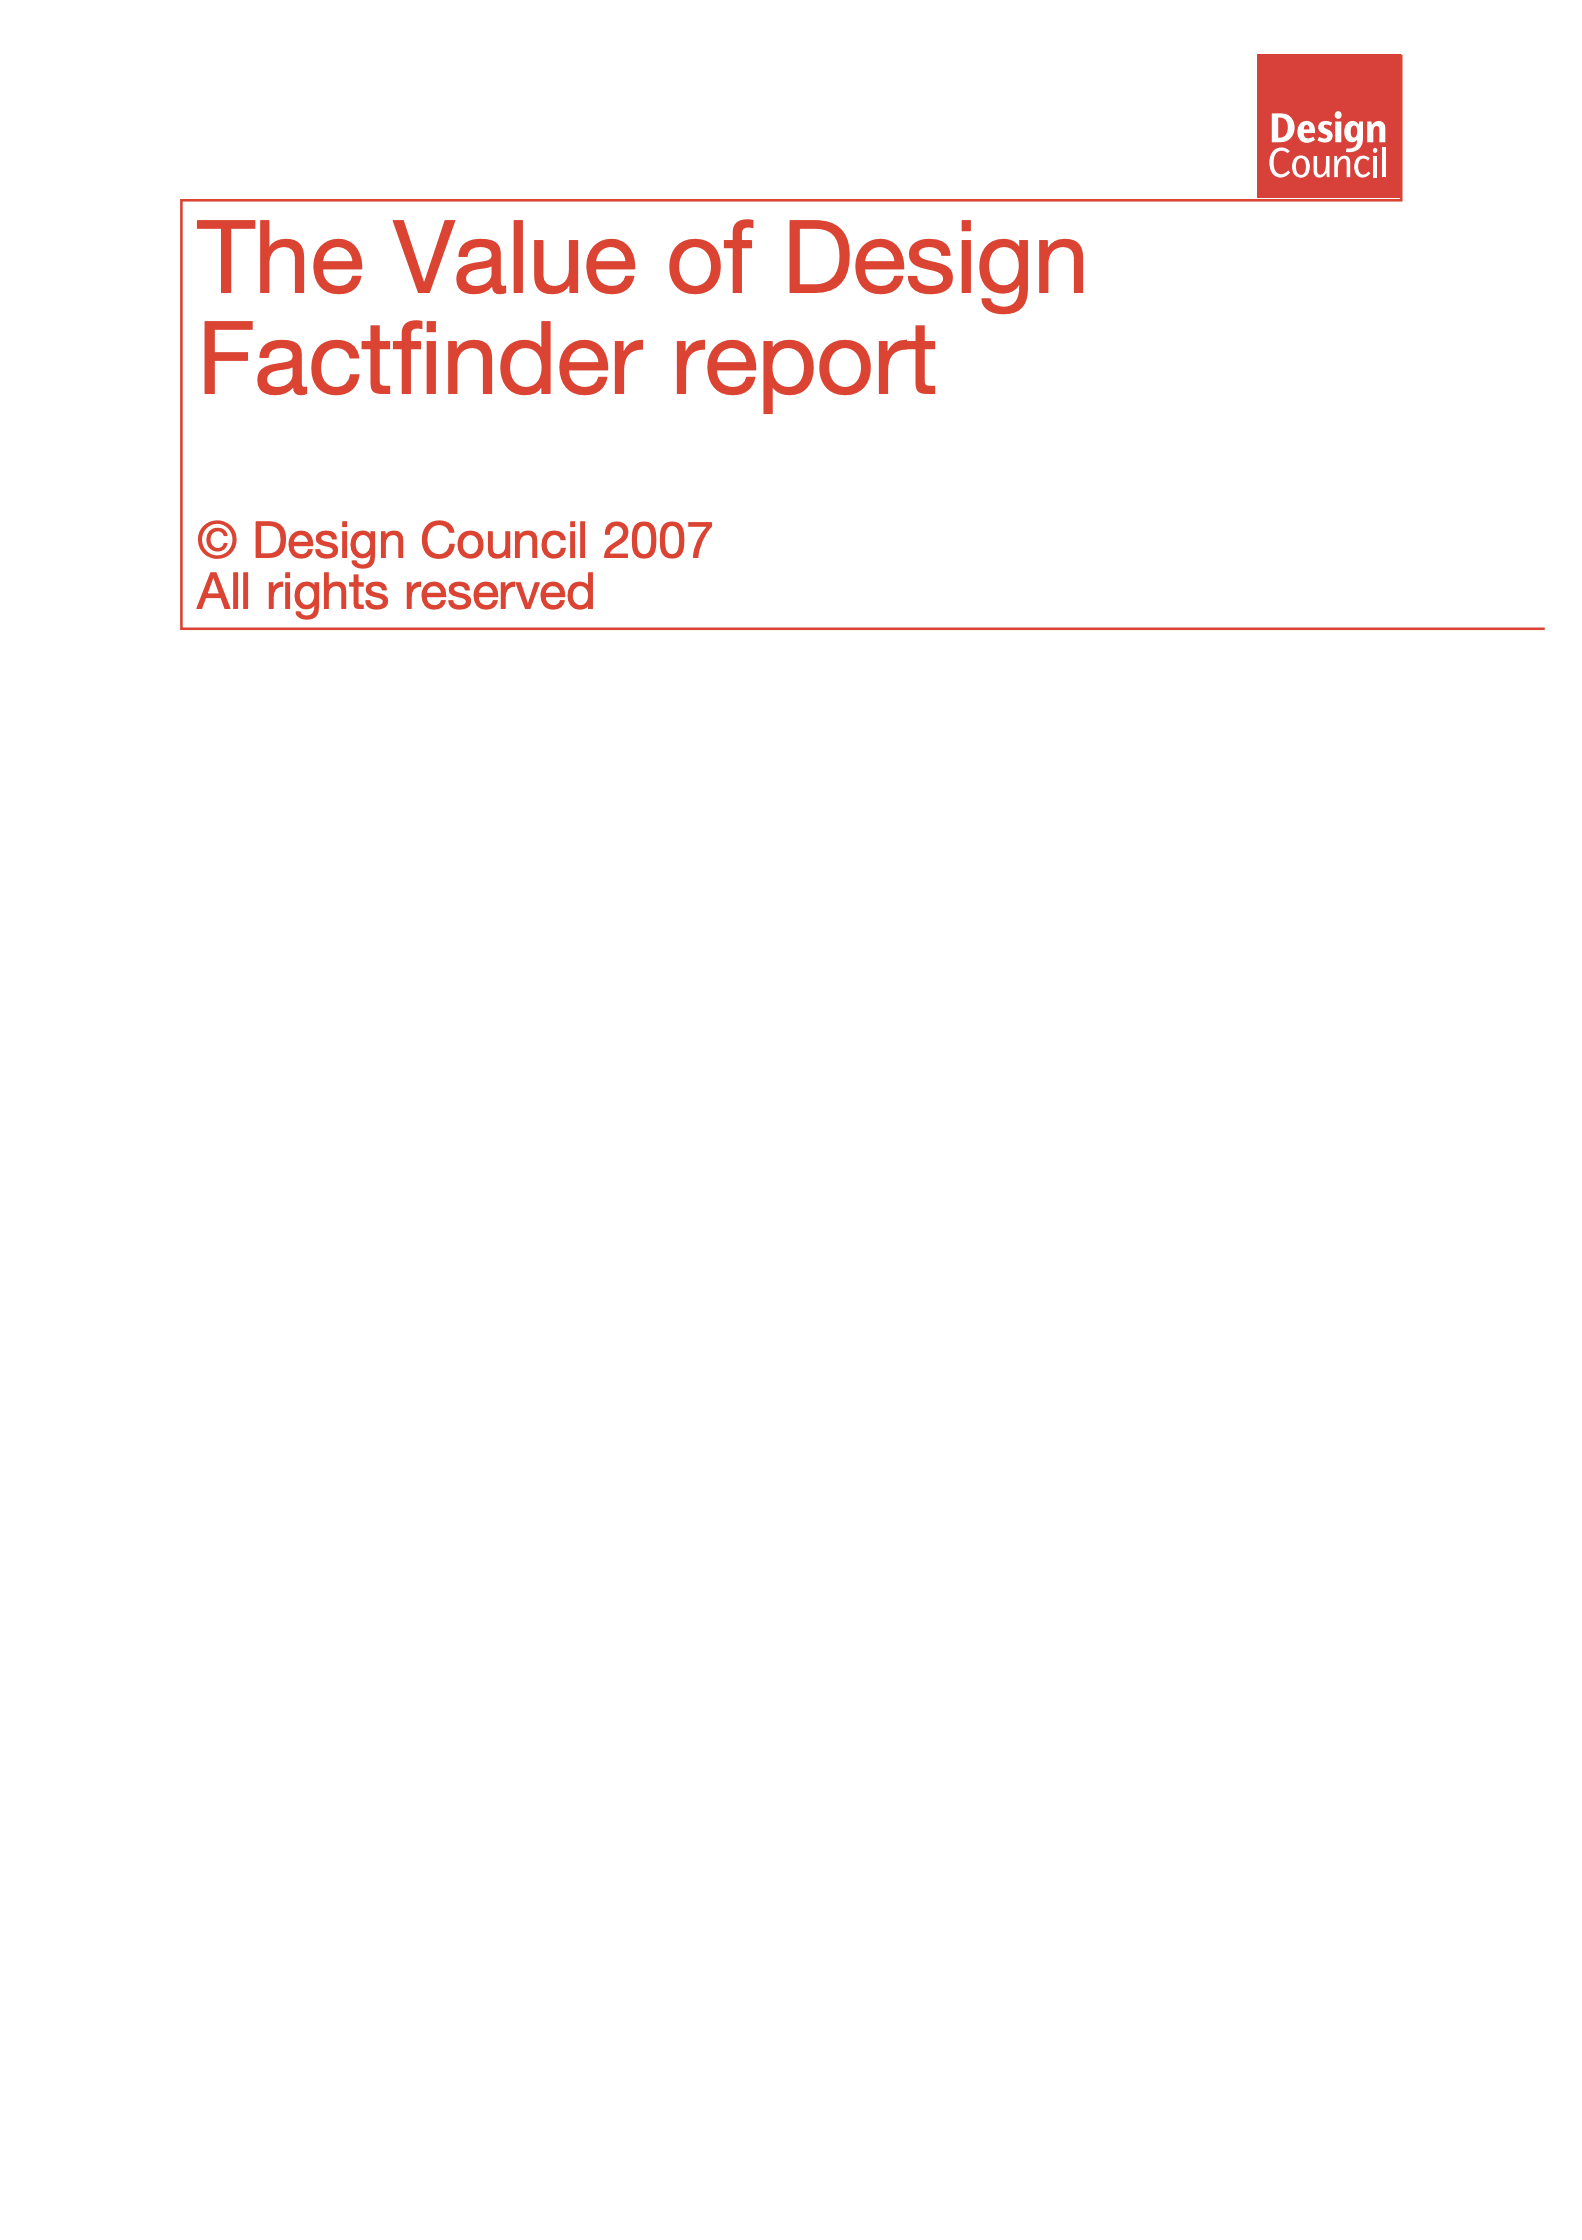 「The Value of Design Factfinder Report」